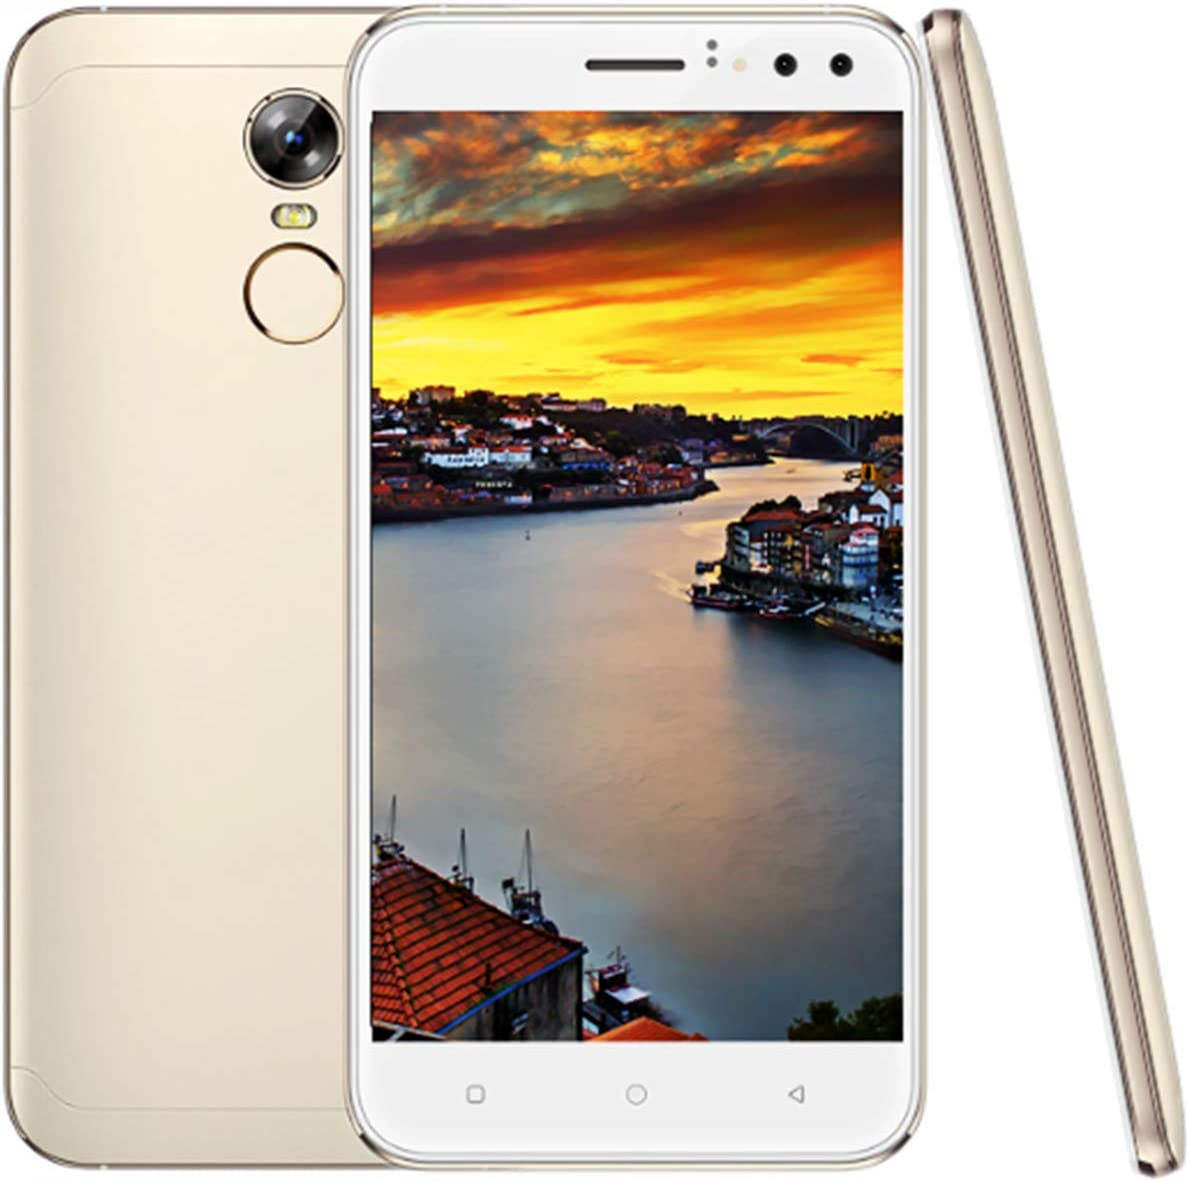 Android 6.0 GPS Unlocked 3G Low End Smartphone 5.0INCH Touch Screen 61pn5rFS1yLSL1500_